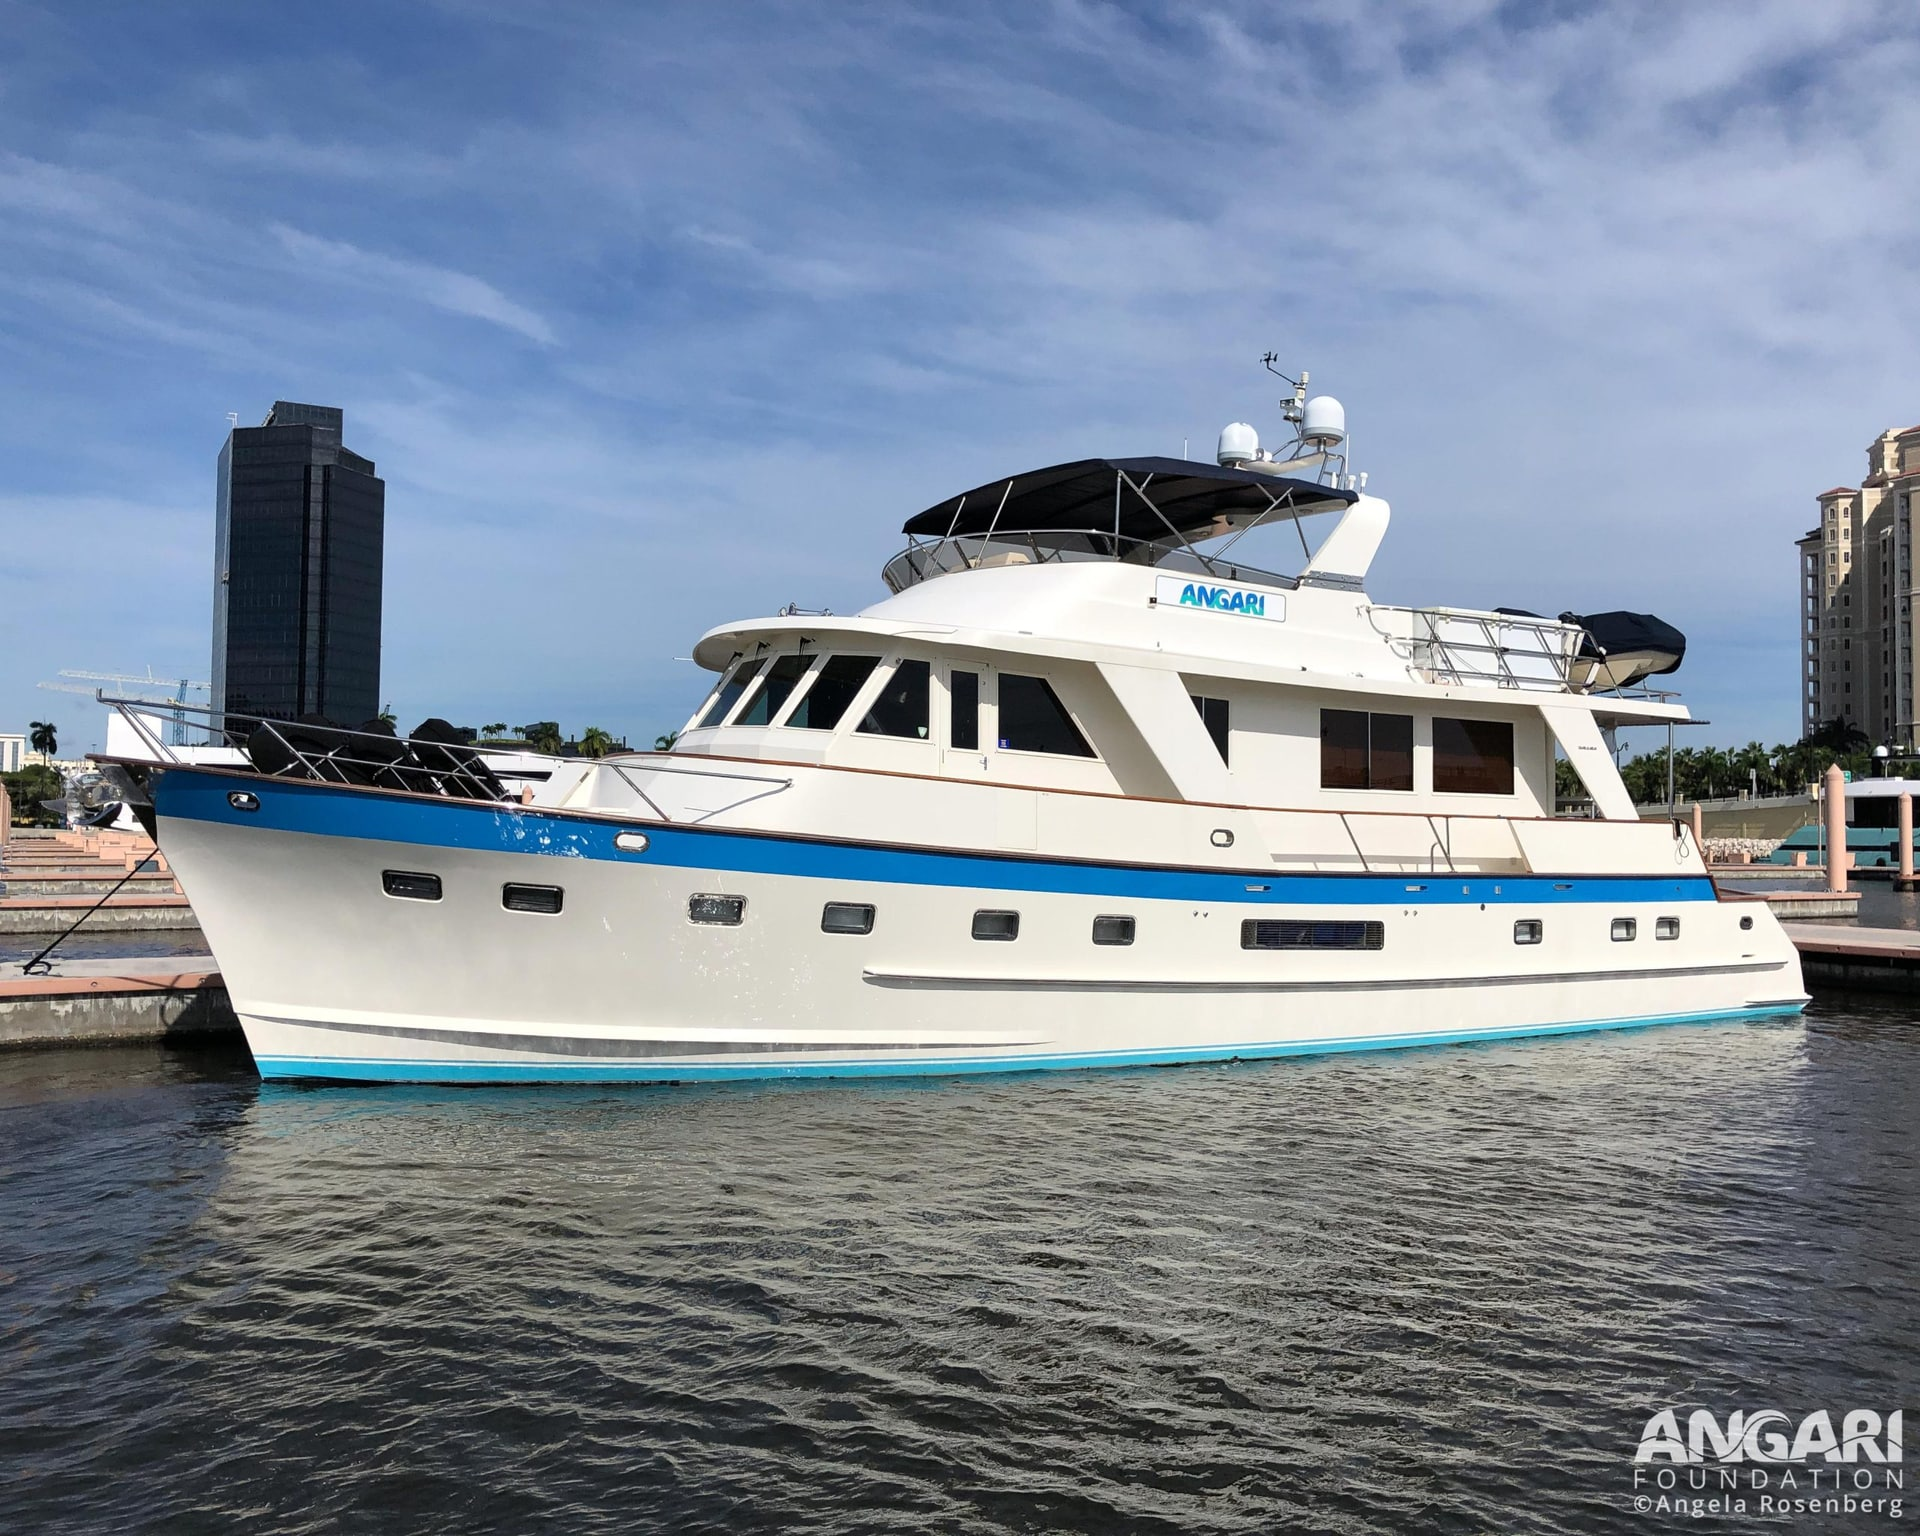 R/V ANGARI conducts ocean science research in the Atlantic, Caribbean, Gulf of Mexico and Florida Keys. Photo taken at home port in West Palm Beach, Florida.